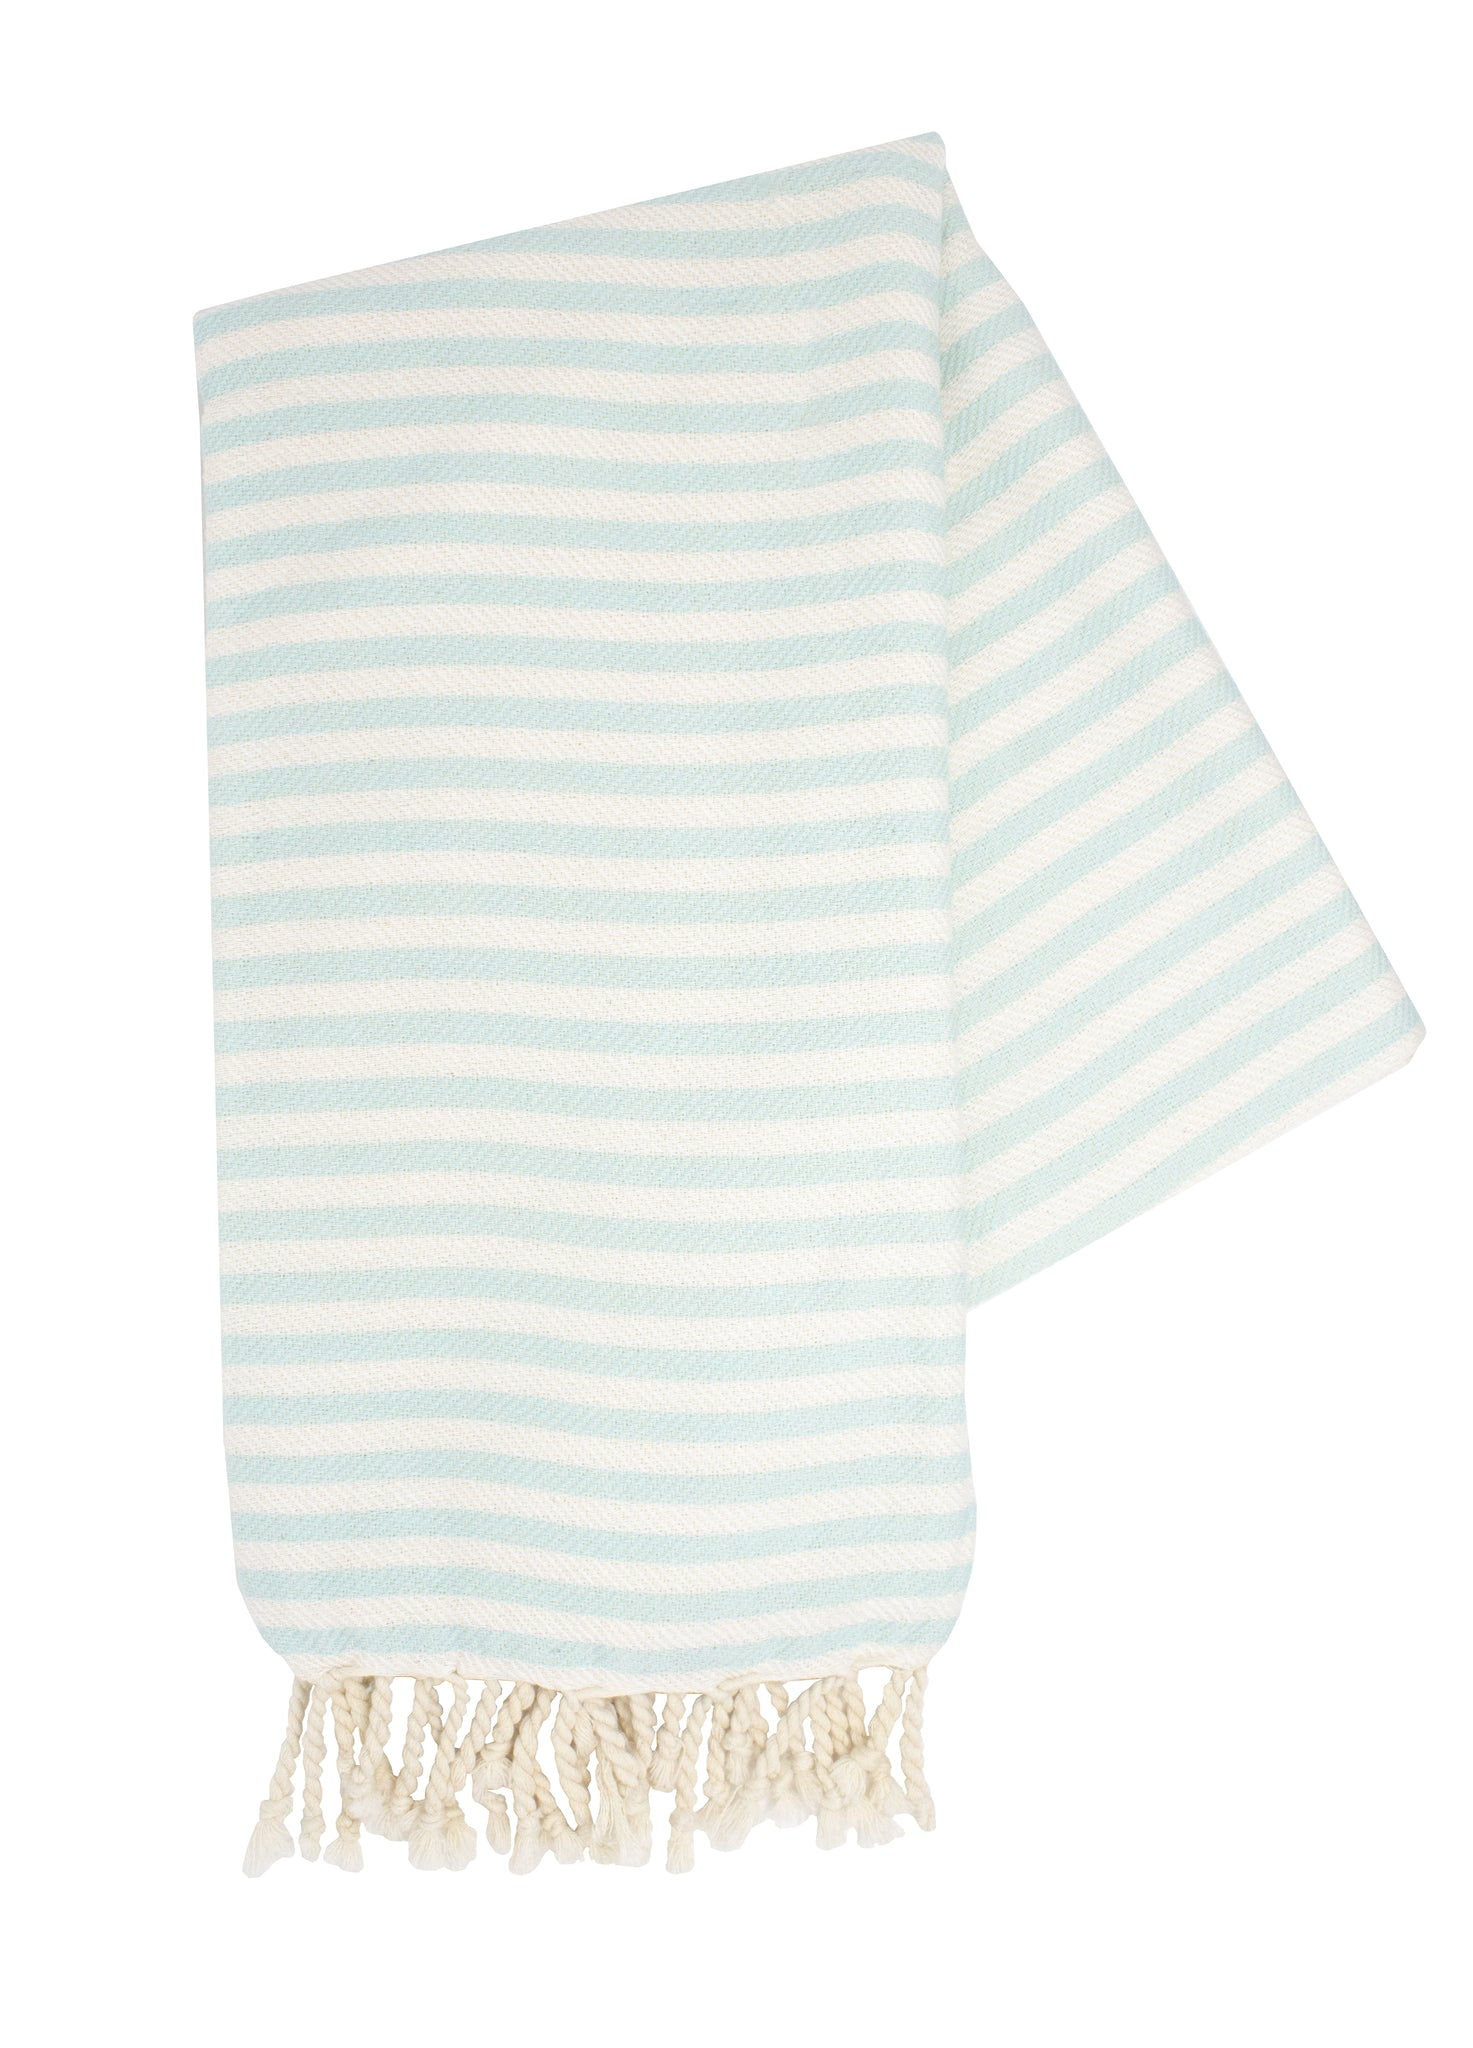 Mint & White Turkish Towel